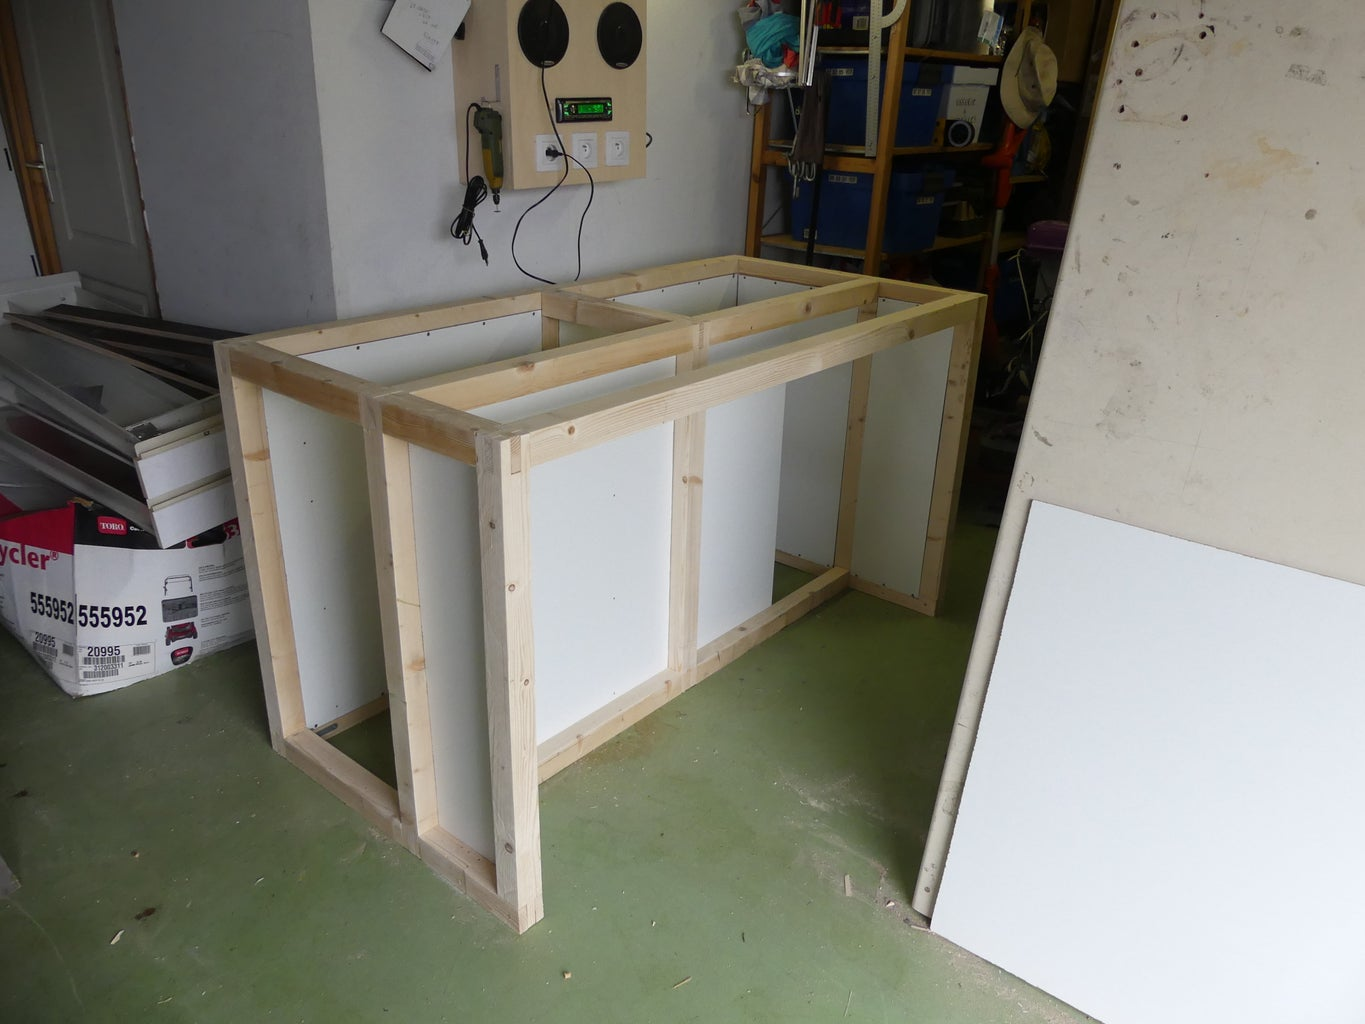 Install the Infill Panels